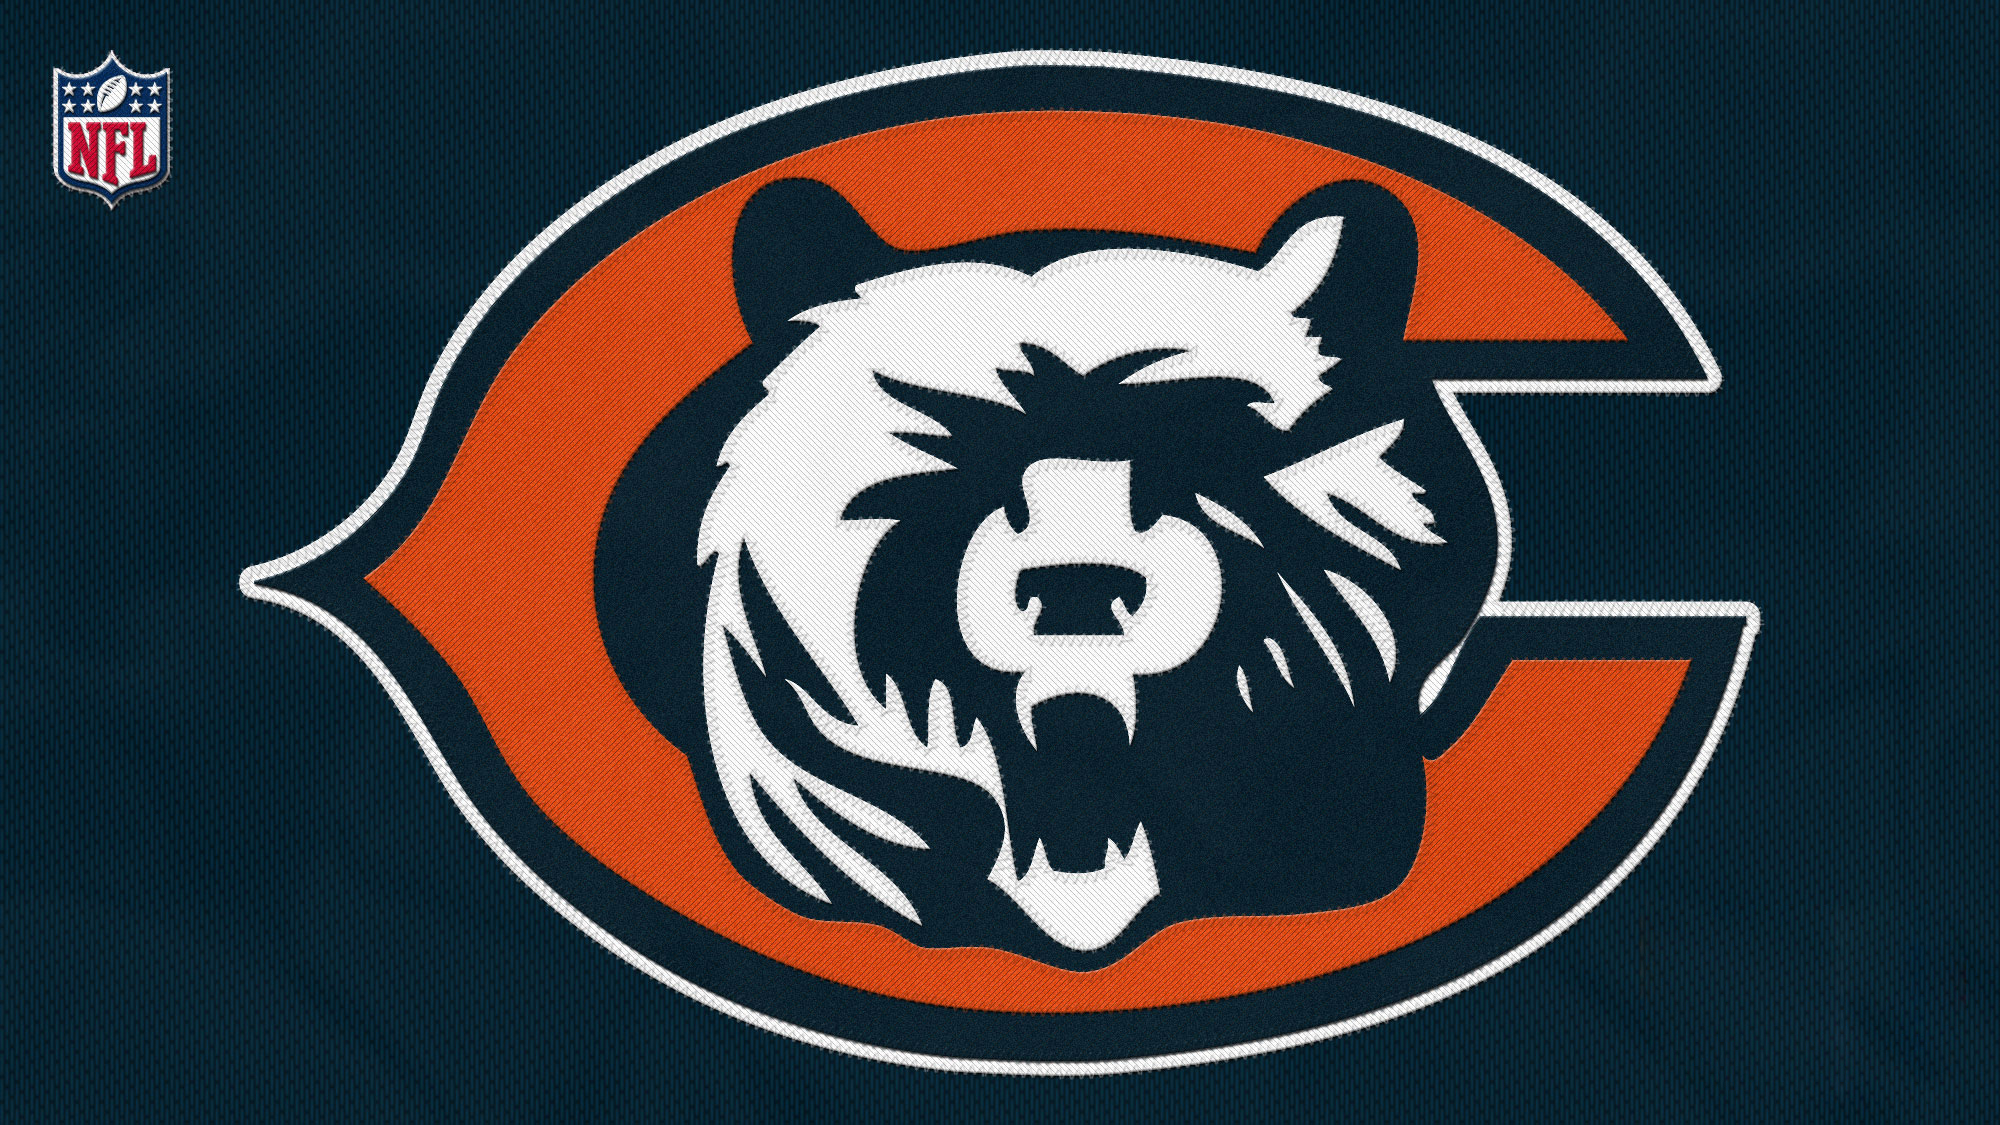 Chicago Bears Backgrounds 2000x1125